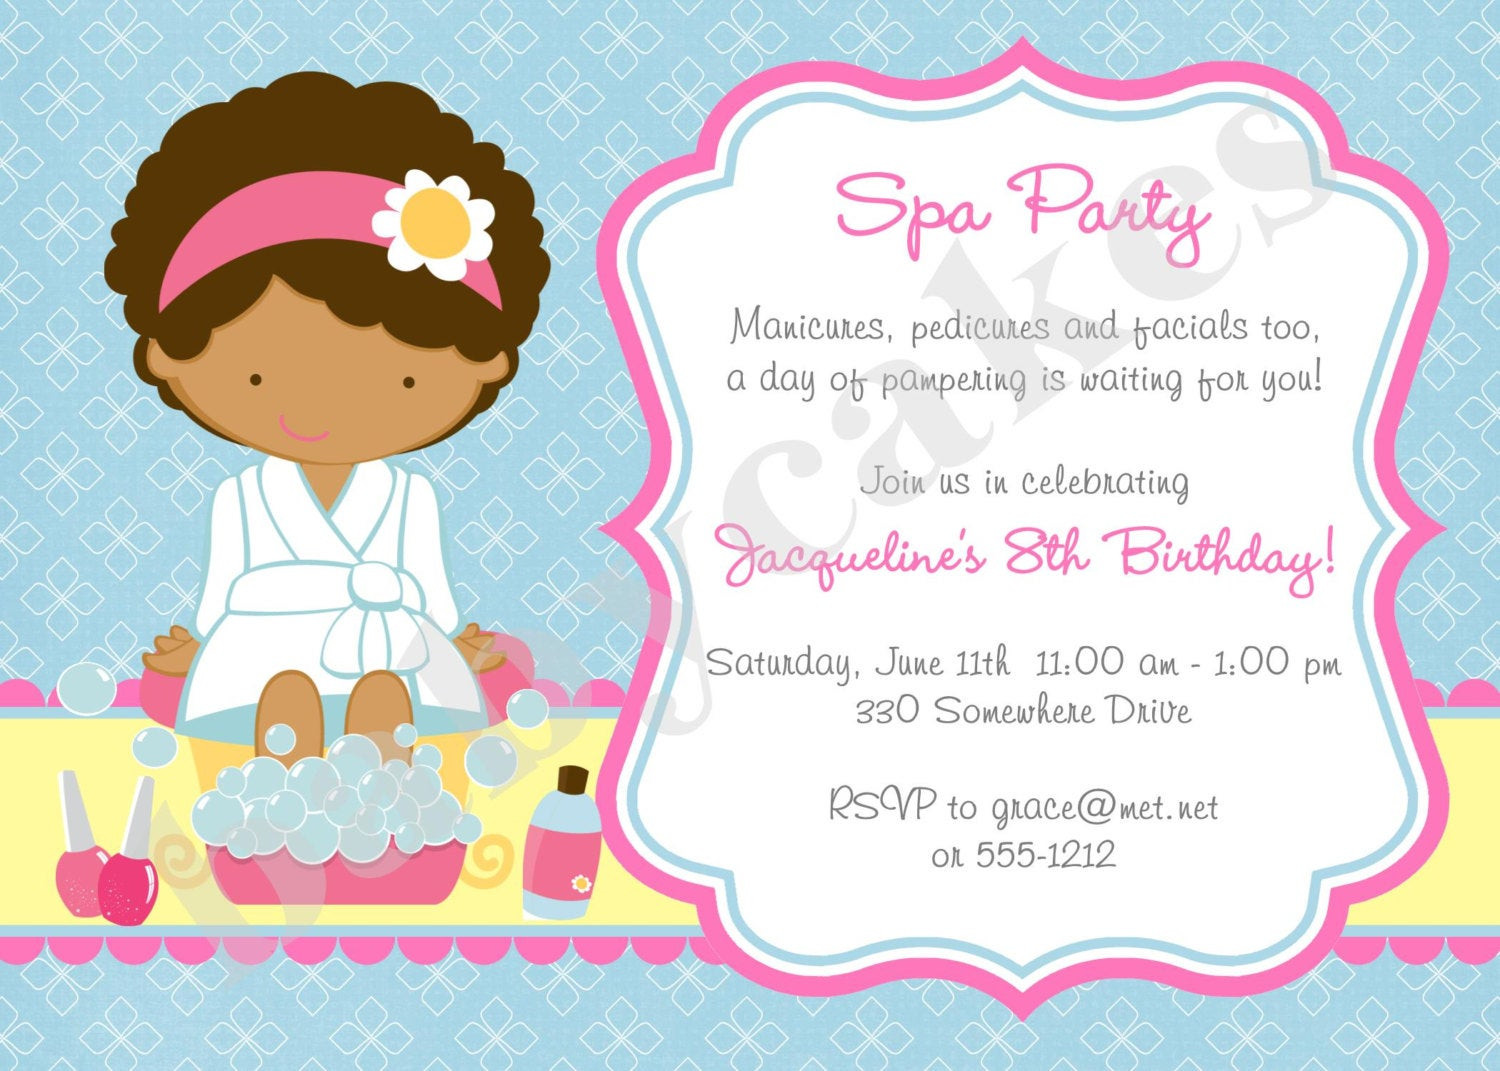 Best ideas about Spa Birthday Invitations . Save or Pin Spa Party Invitation Spa Birthday Party Invitation invite Spa Now.